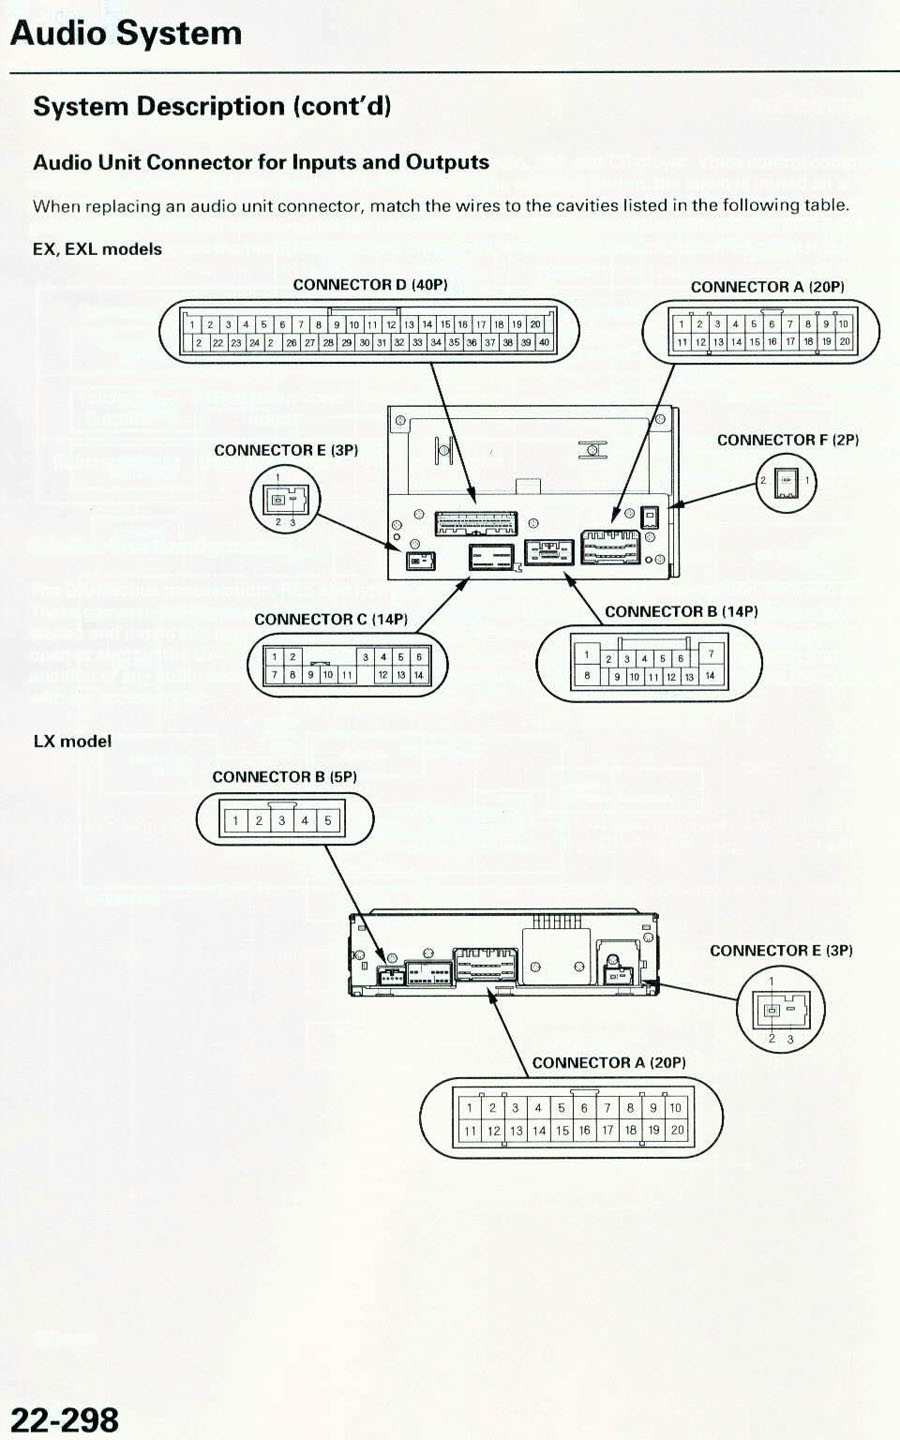 2006 Lexus Rx330 Radio Wiring Diagram 37 Images 430n To Amp 32903d1198615435 Loud Hissing After Install Audio Connector 2006a Honda Pilot